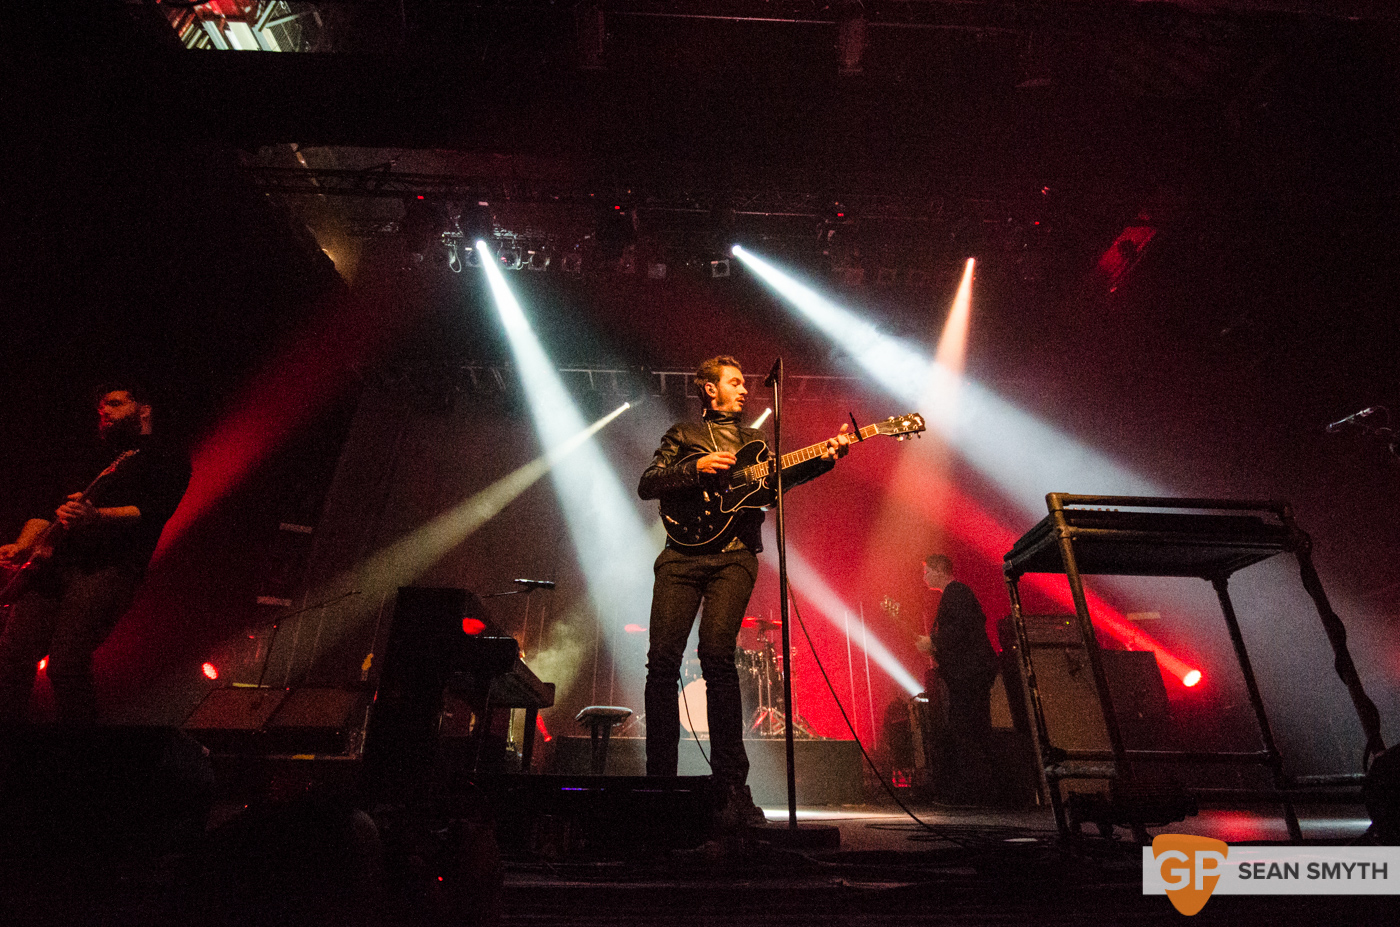 editors-at-the-olympia-theatre-by-sean-smyth-10-10-15-28-of-28_21467587794_o